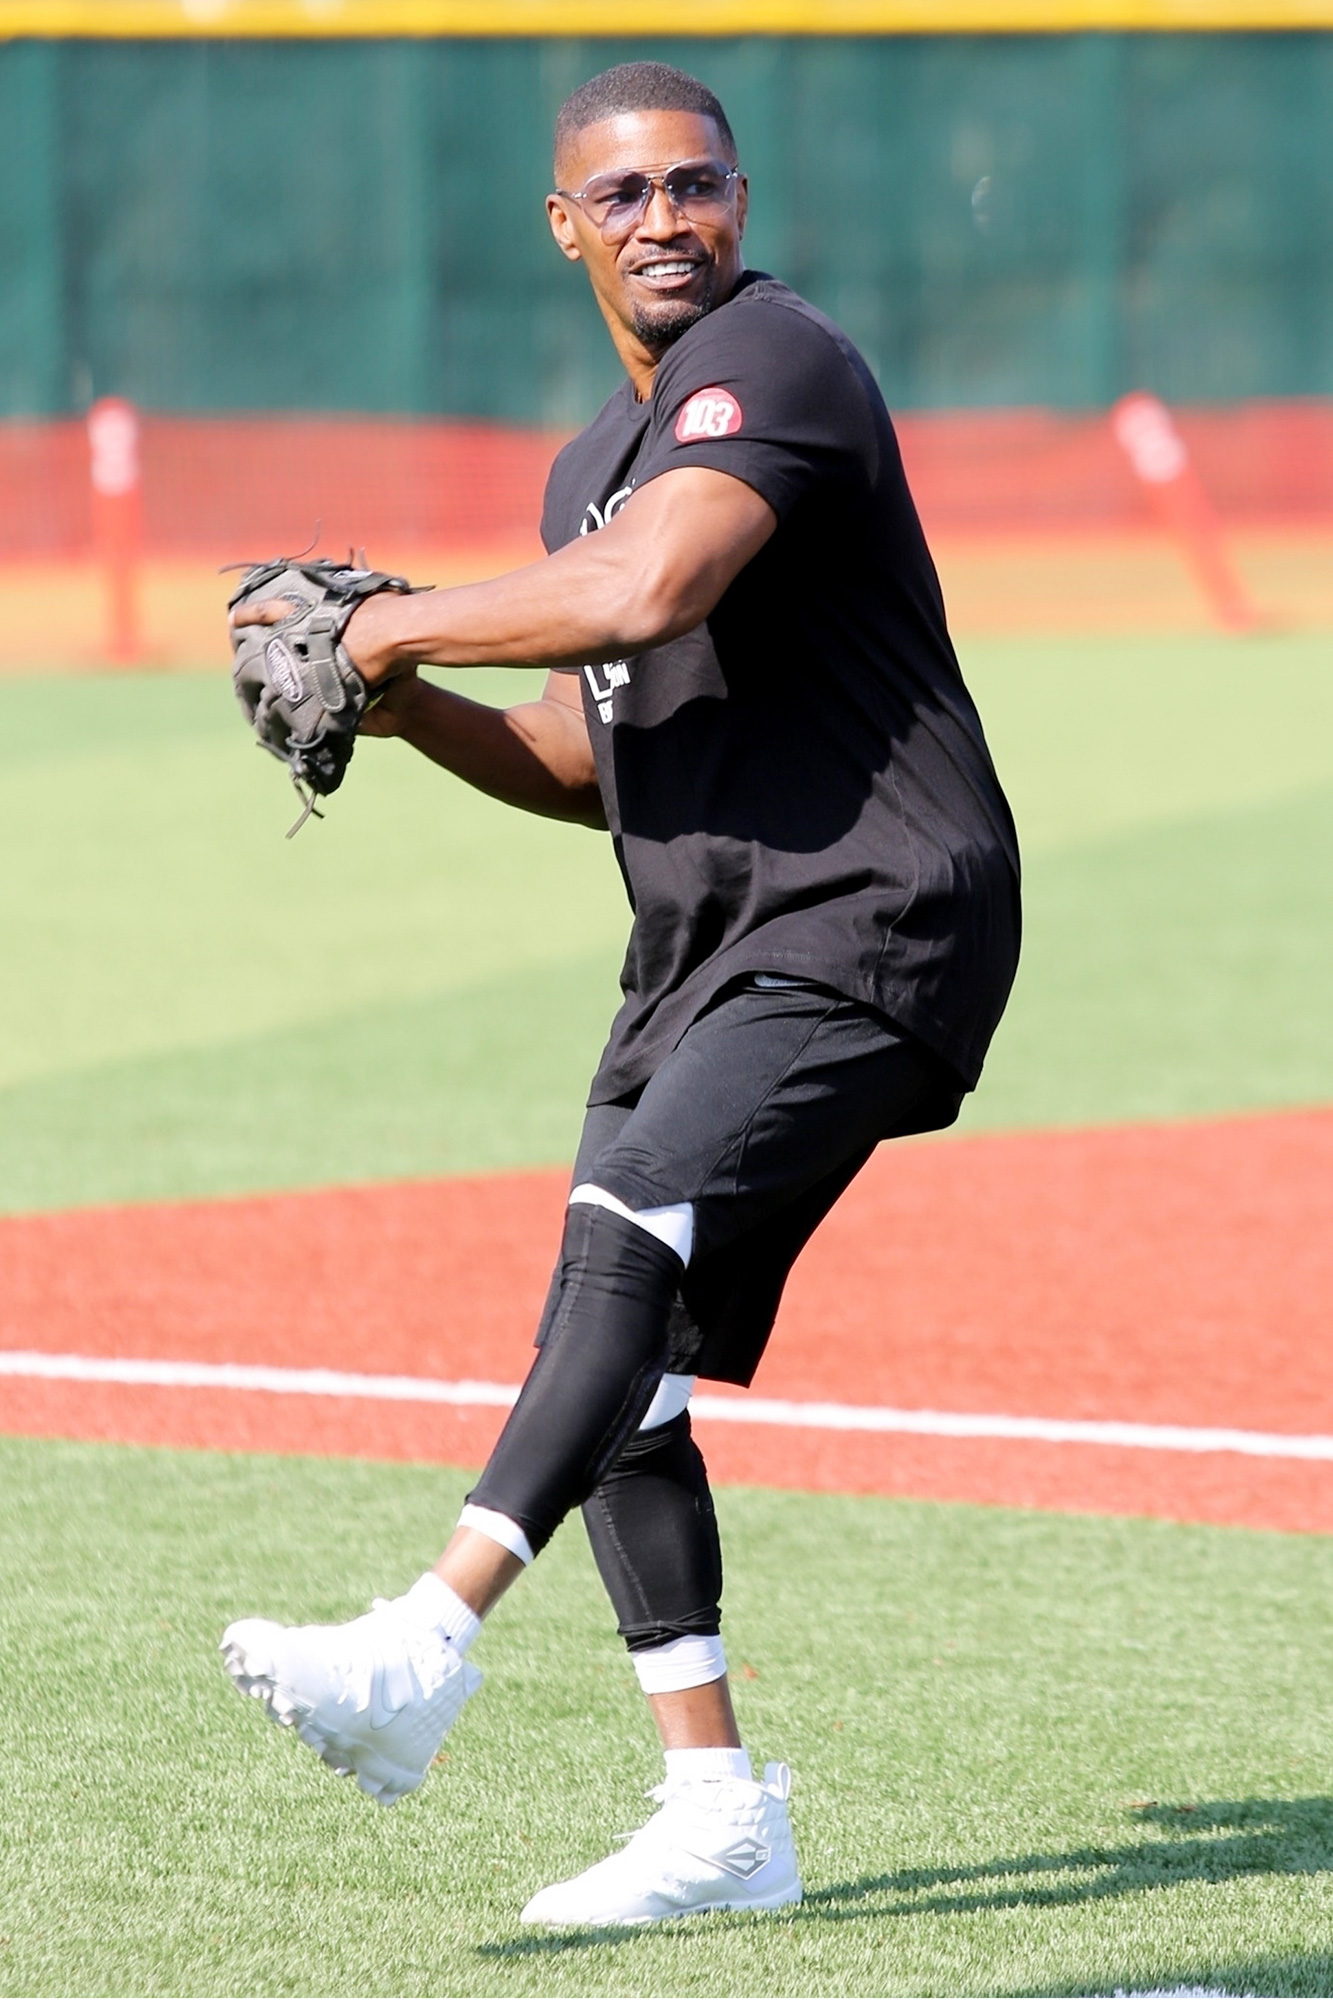 Jamie Foxx warms up before a game of baseball with Austin McBroom, Chris Tucker, and other celebrities in Hollywood.